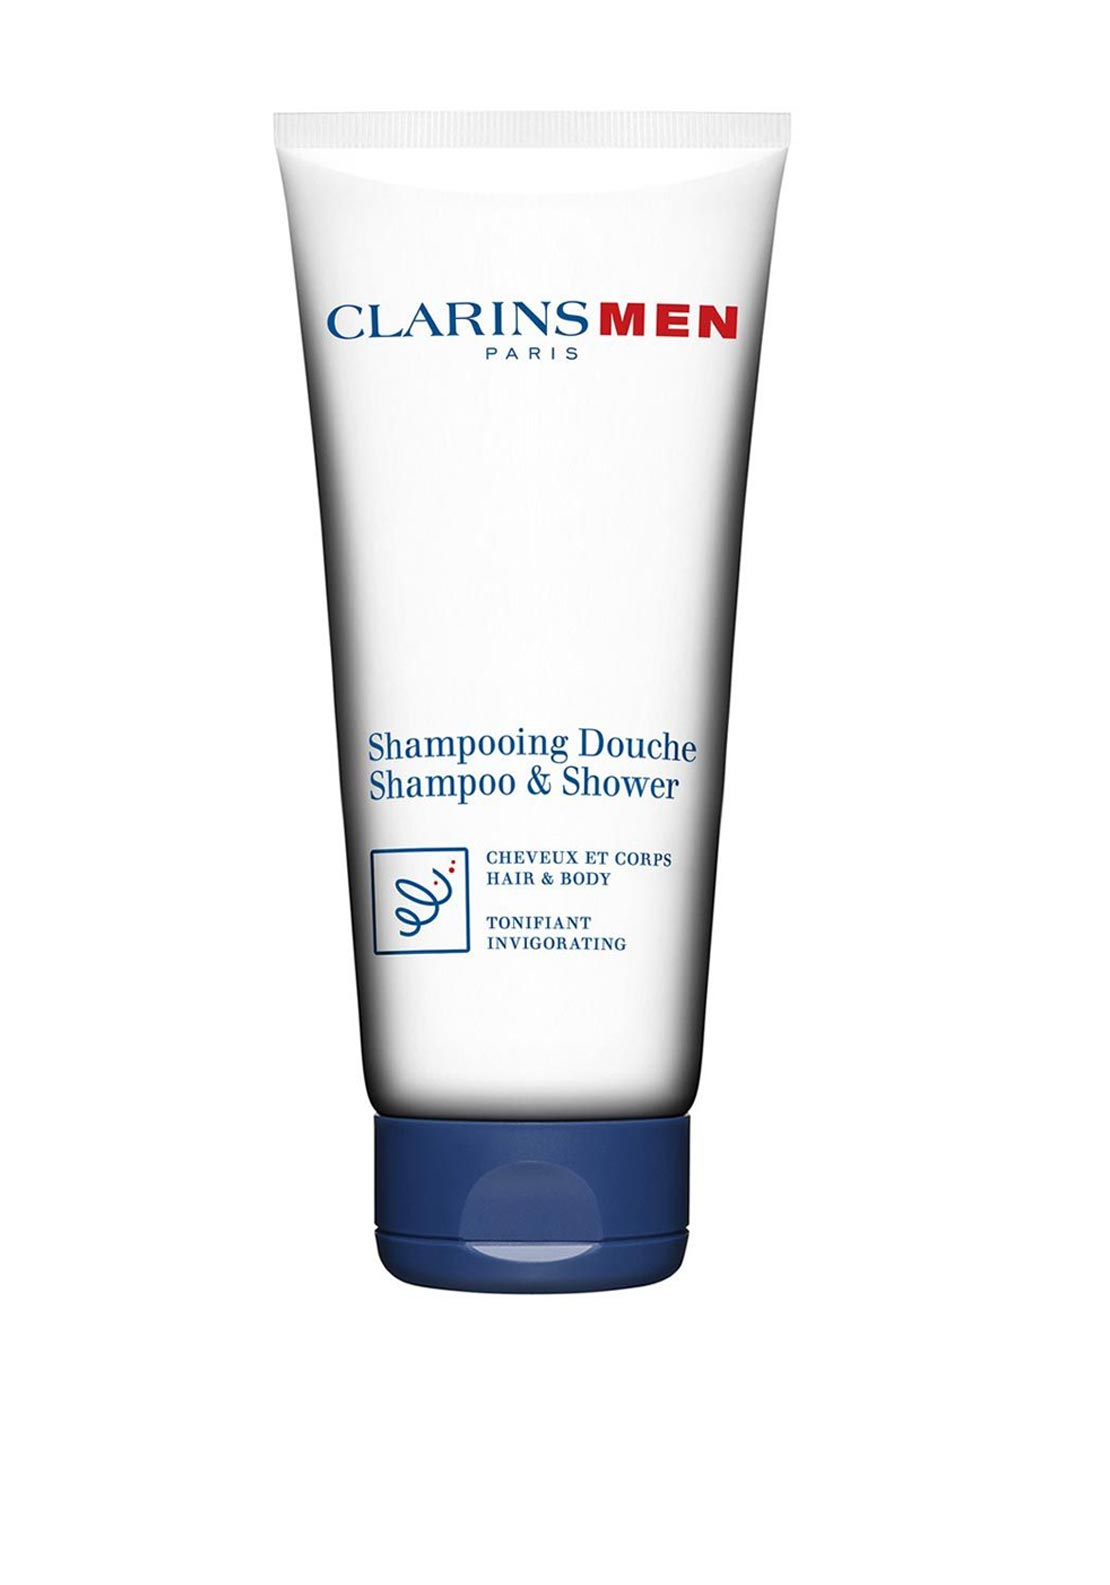 Clarins Men Shampoo & Shower Wash, 200ml